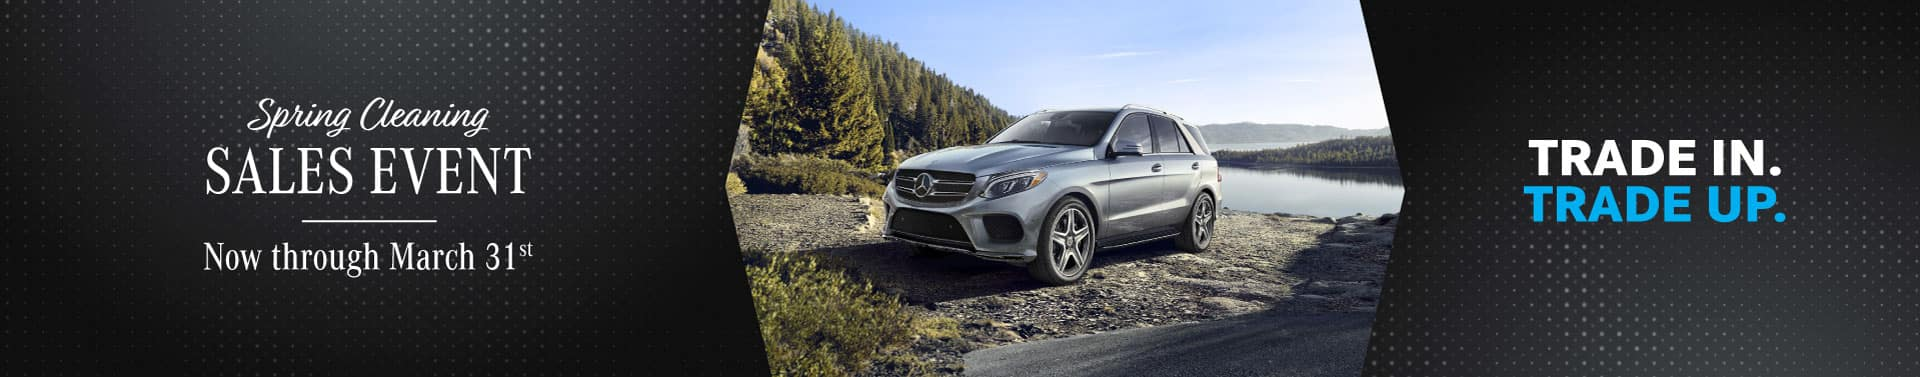 Car Truck Trade In Value Mercedes Benz Of Foothill Ranch Near Irvine